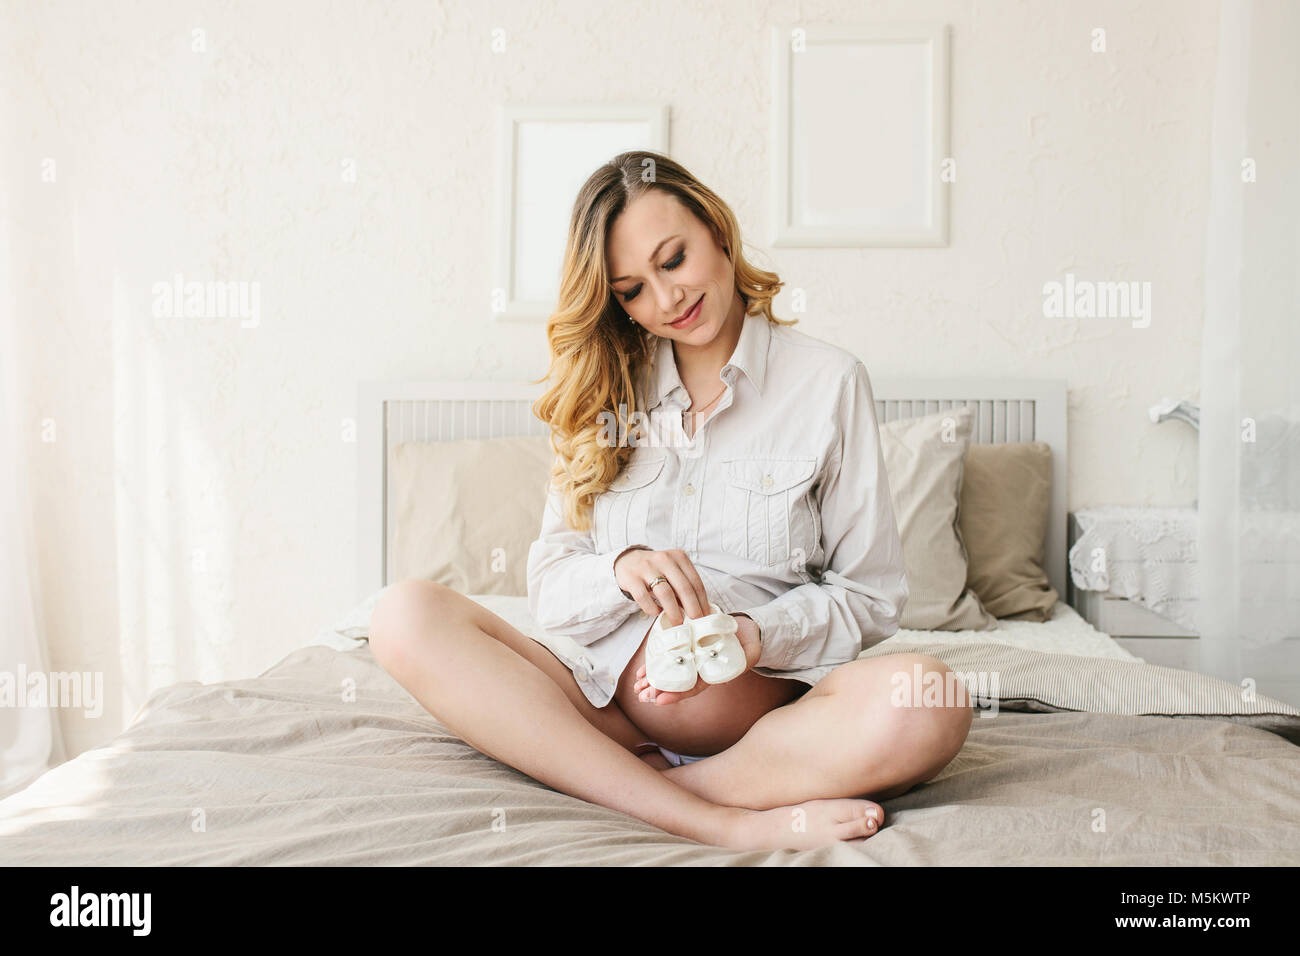 Beautiful adult pregnant woman. Waiting for the baby. Pregnancy. Care, tenderness, motherhood, childbirth. - Stock Image